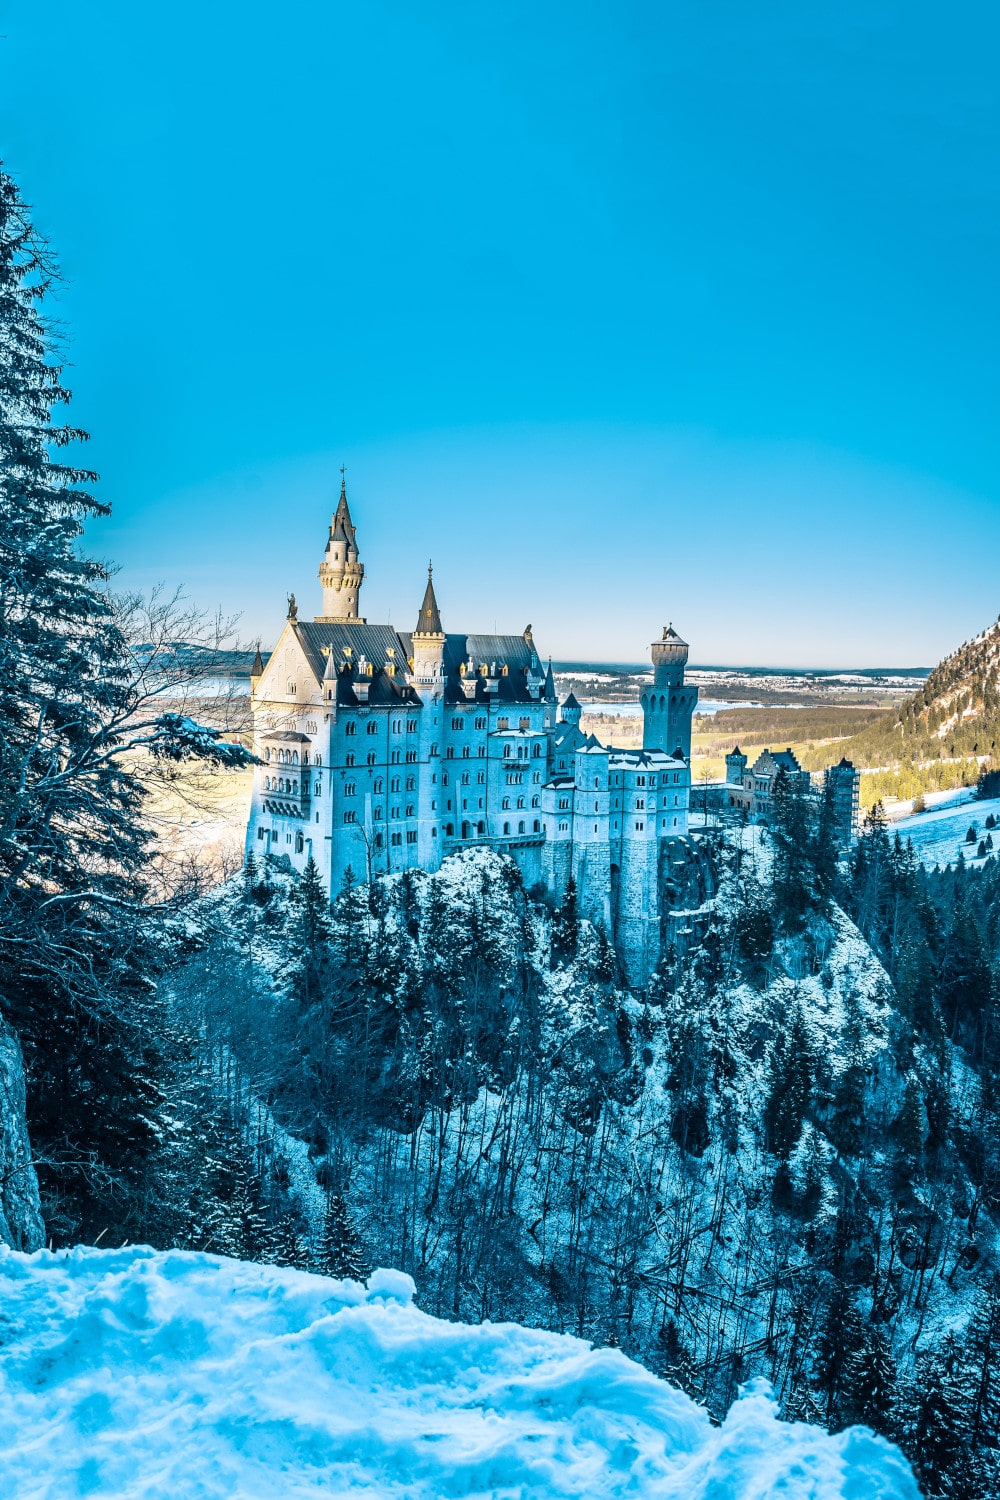 Slot Neuschwanstein - Photo Bharat Patil via Unsplash